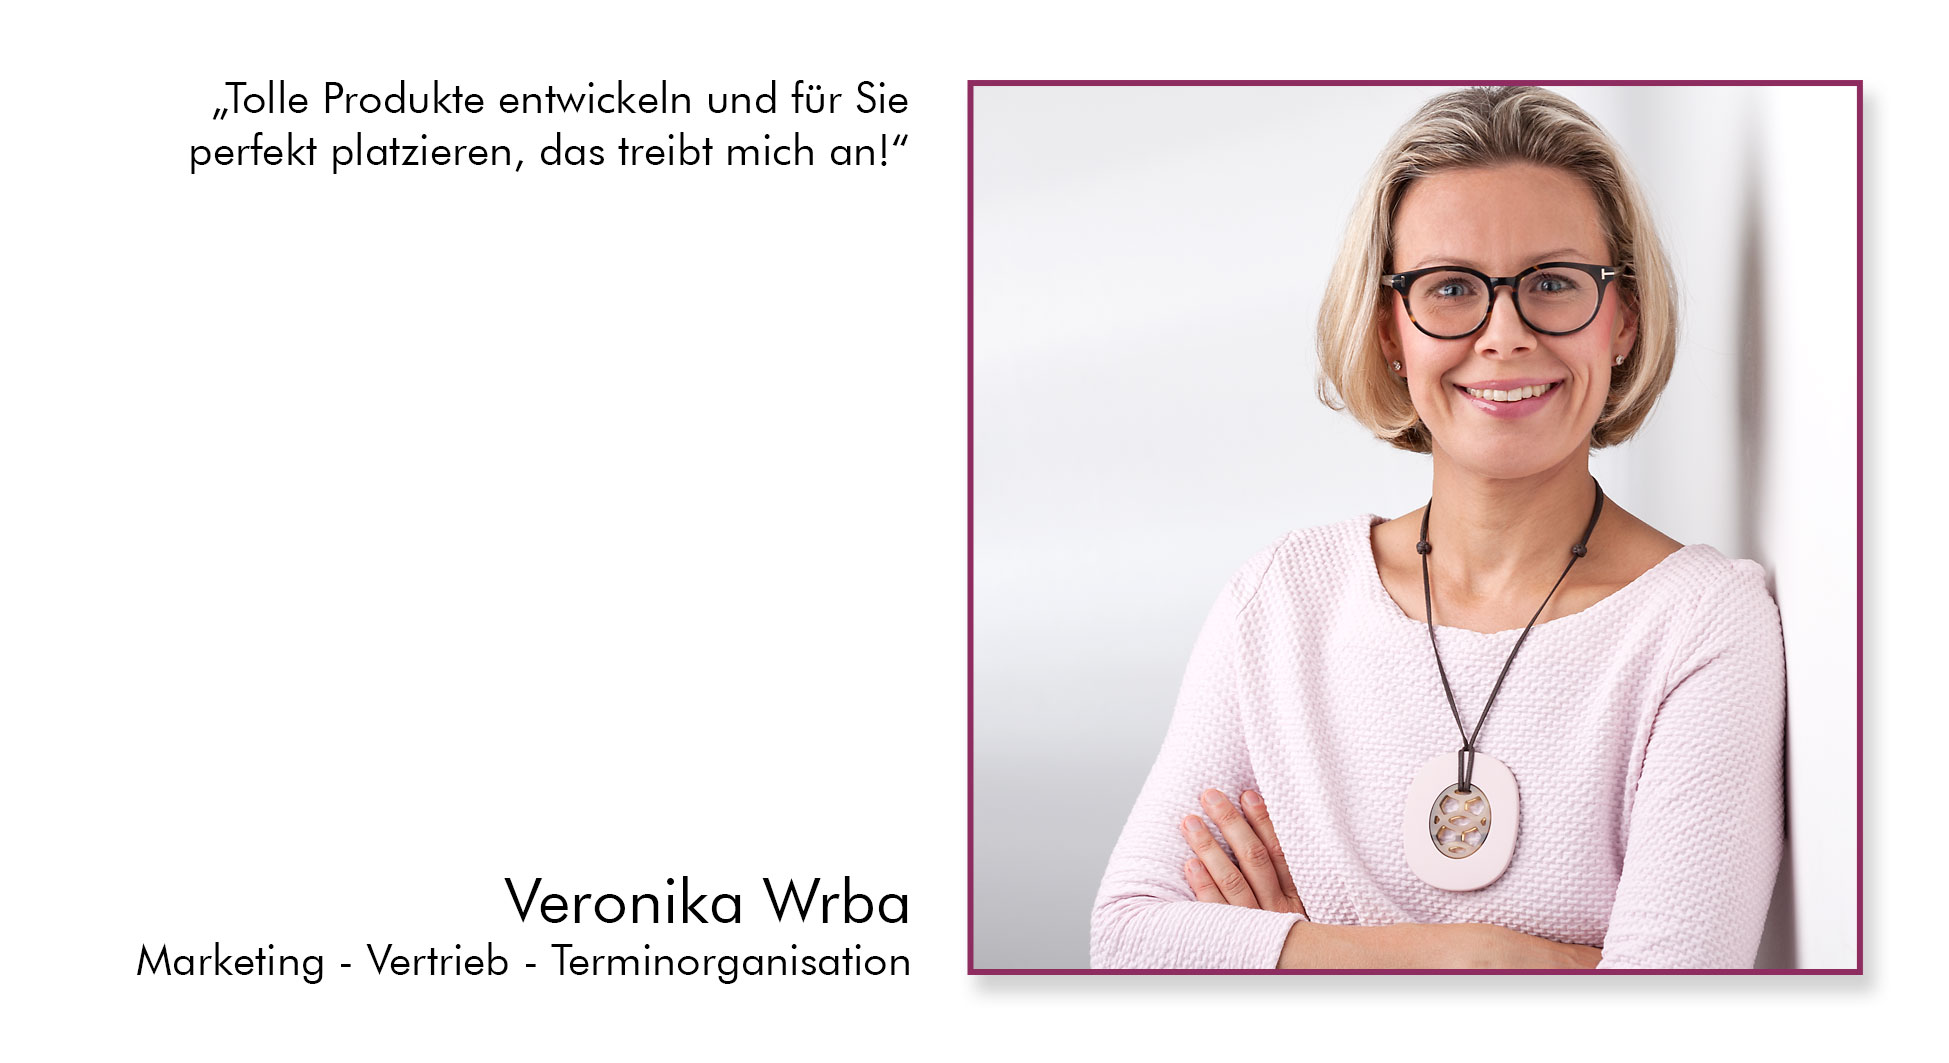 veronika mit text